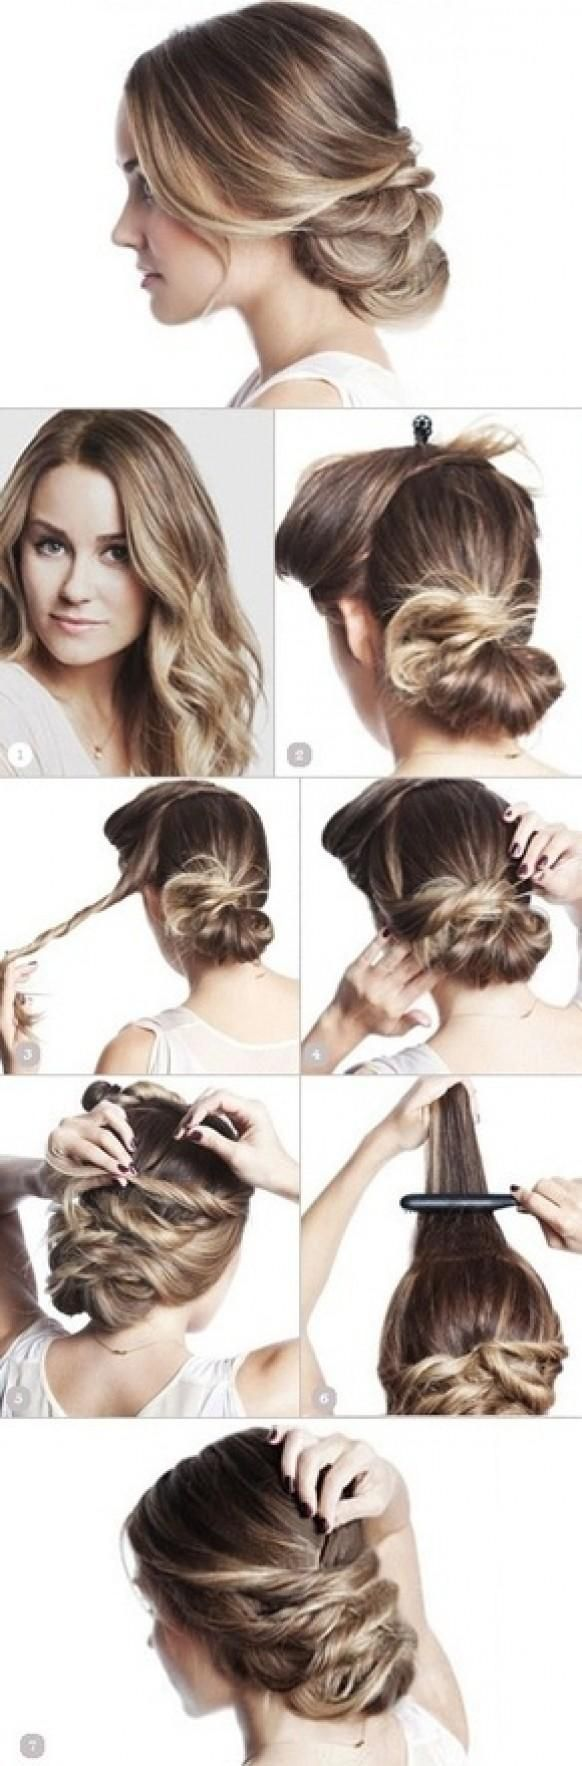 Hair > Stile Abiti & Co #1969341 - Weddbook